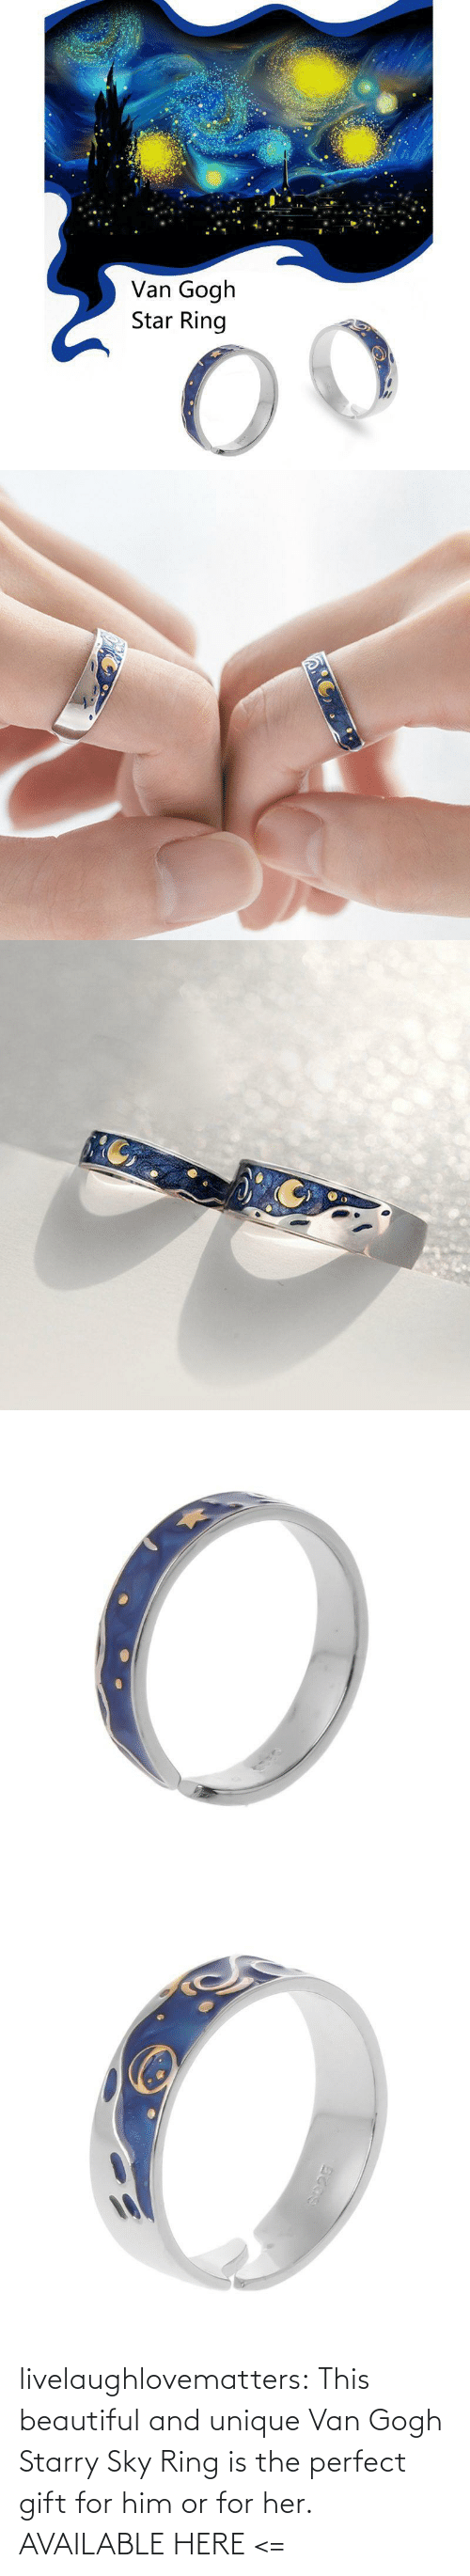 van: livelaughlovematters:  This beautiful and unique Van Gogh Starry Sky Ring is the perfect gift for him or for her. AVAILABLE HERE <=